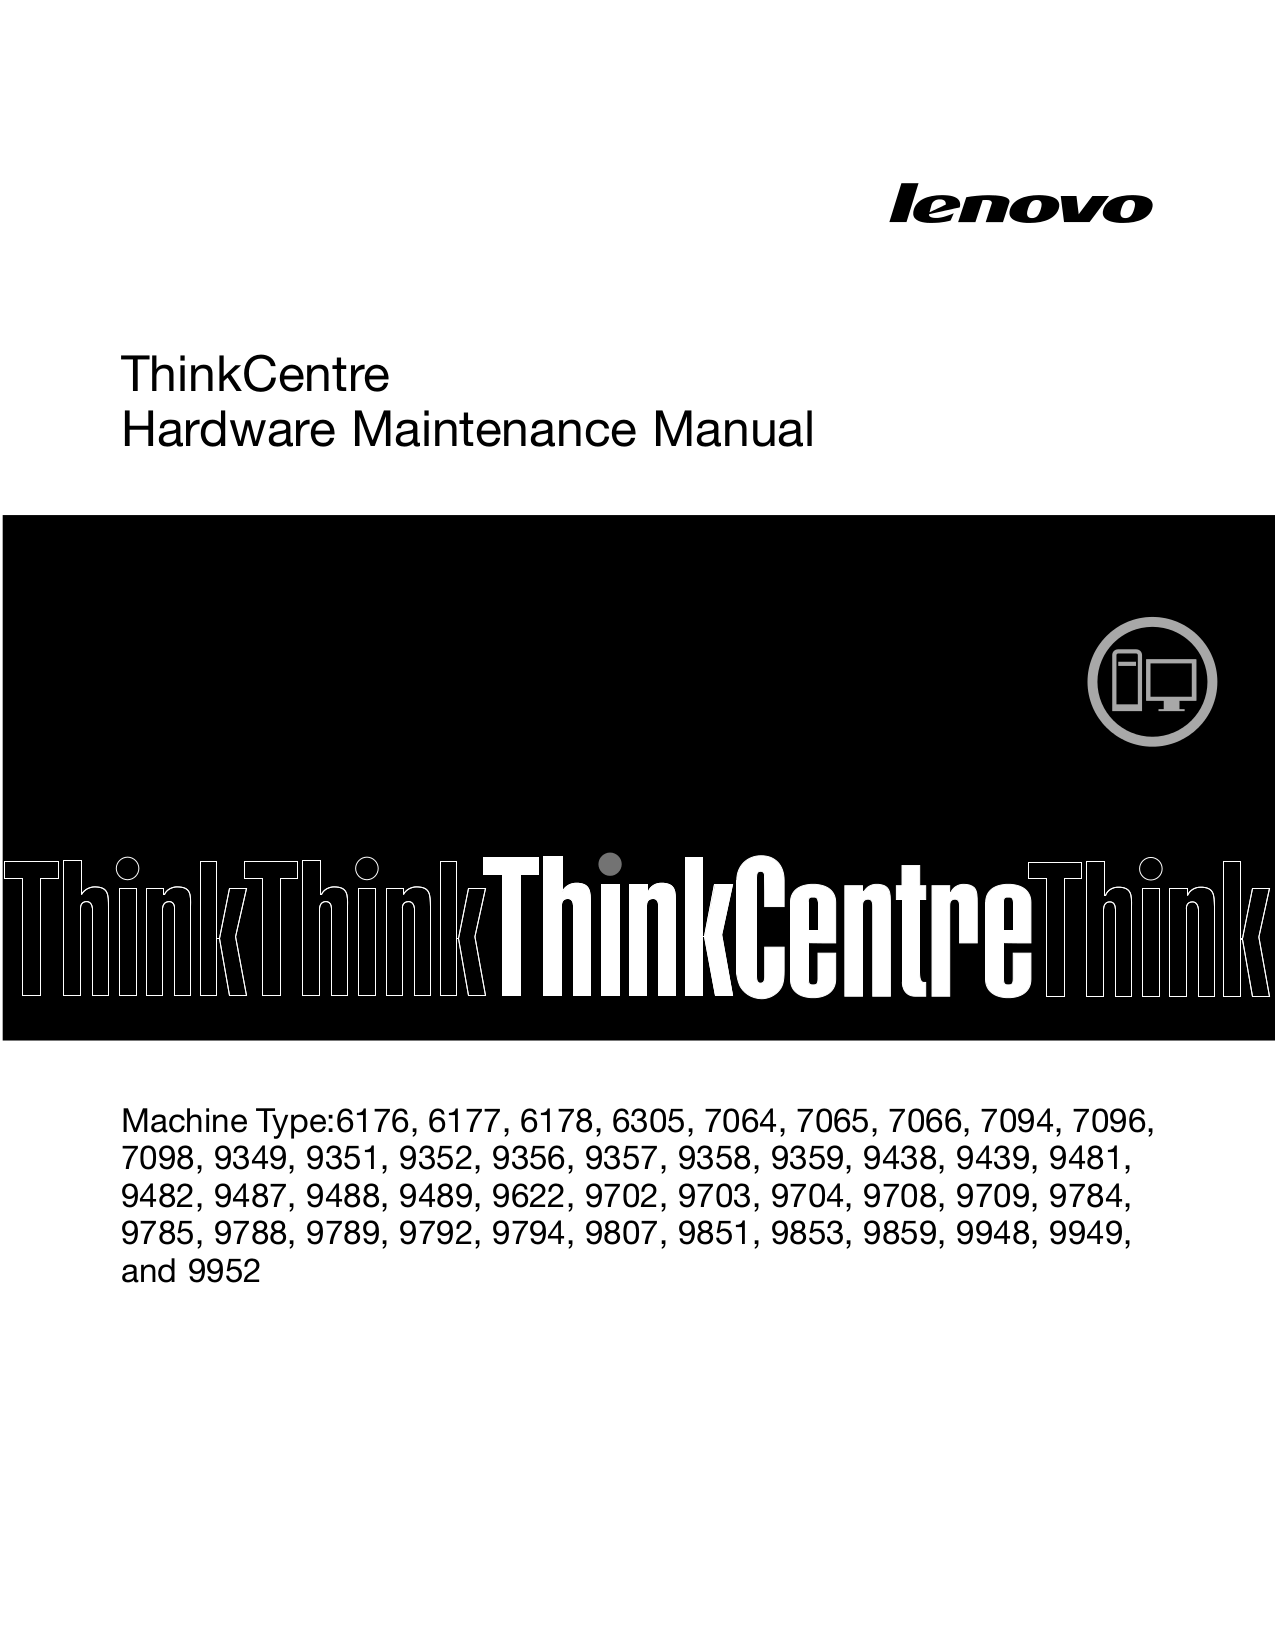 pdf for Lenovo Desktop ThinkCentre M57e 9488 manual